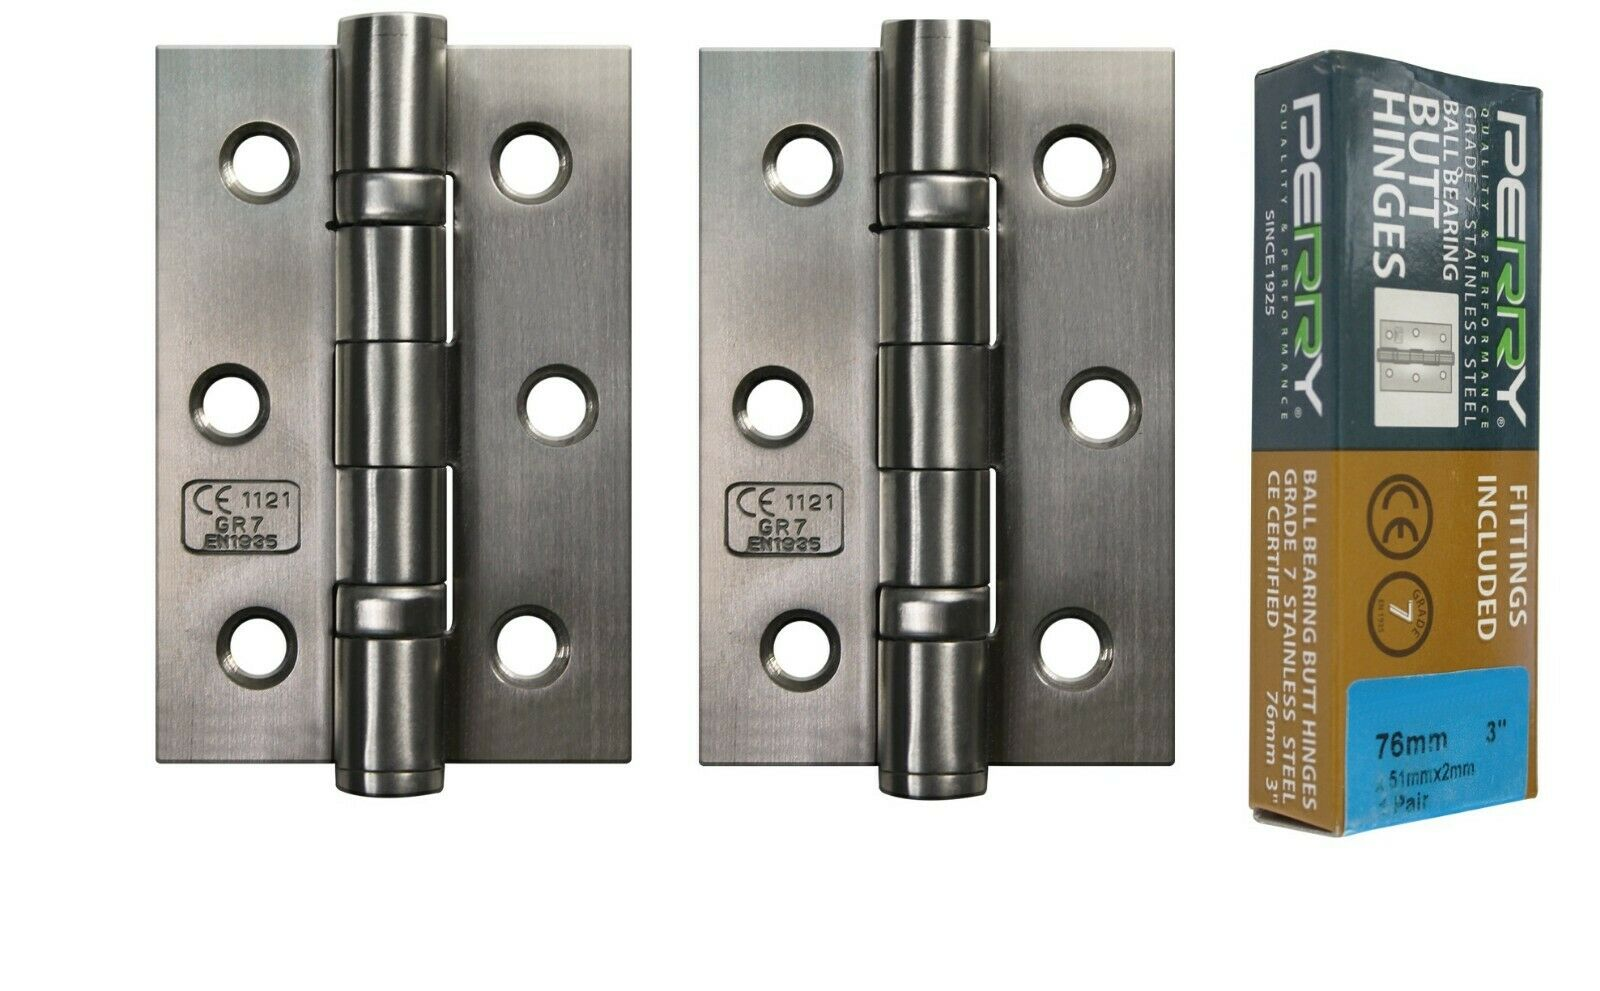 PERRY SATIN 75mm Stainless Steel Ball Bearing Butt Hinges Grade 7 CE Marked D1